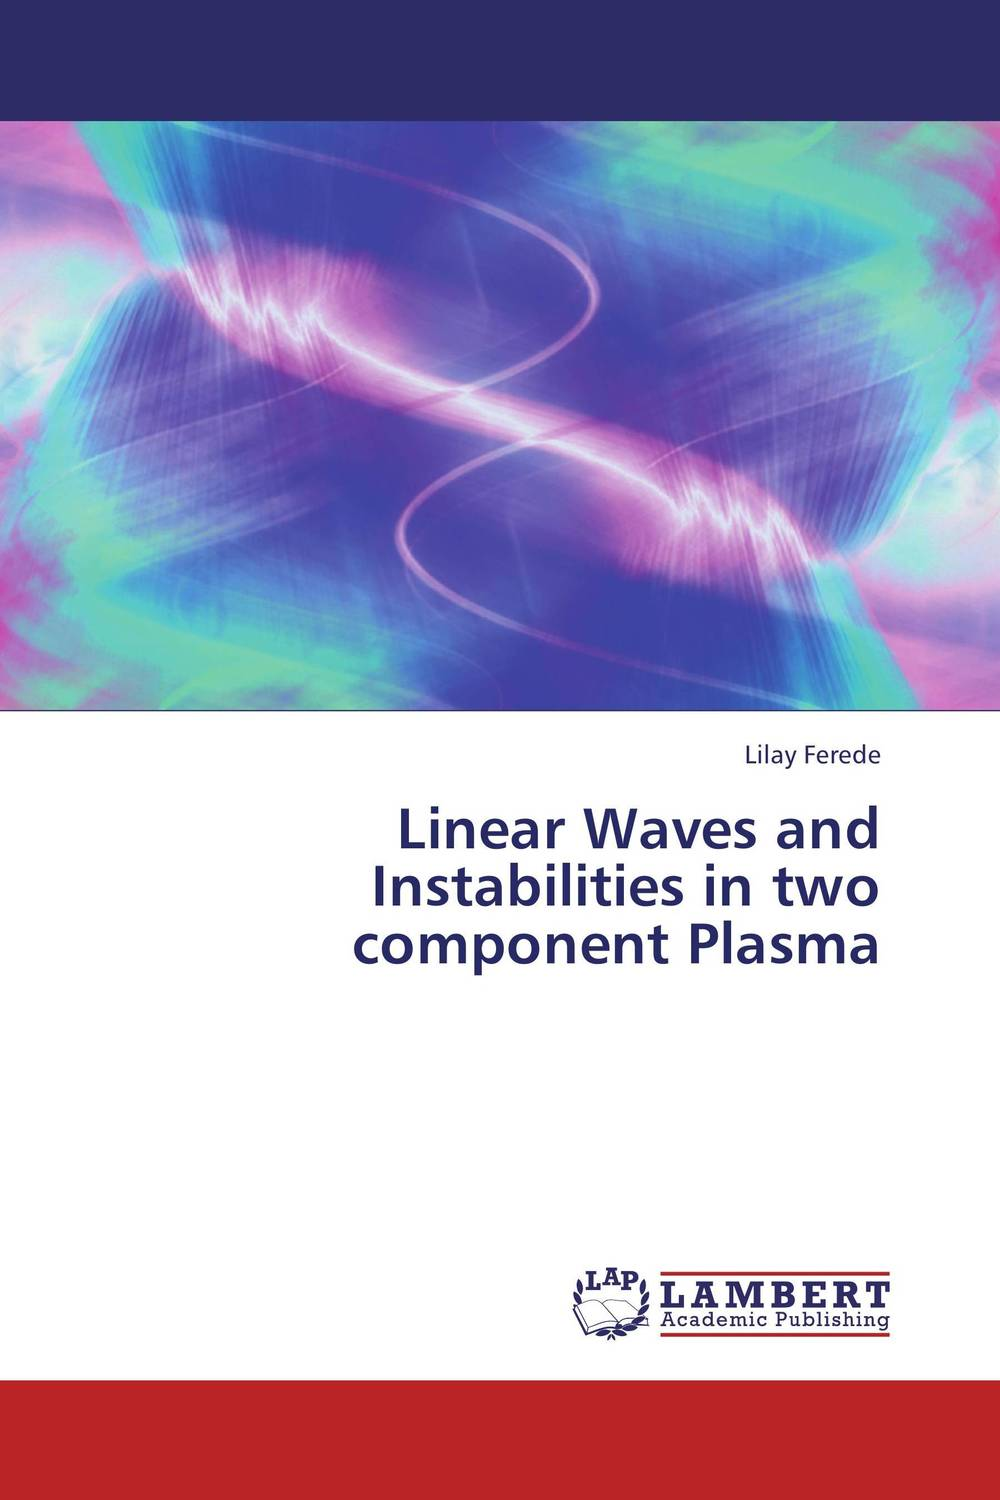 Linear Waves and Instabilities in two component Plasma kondratieff waves cycles crises and forecasts